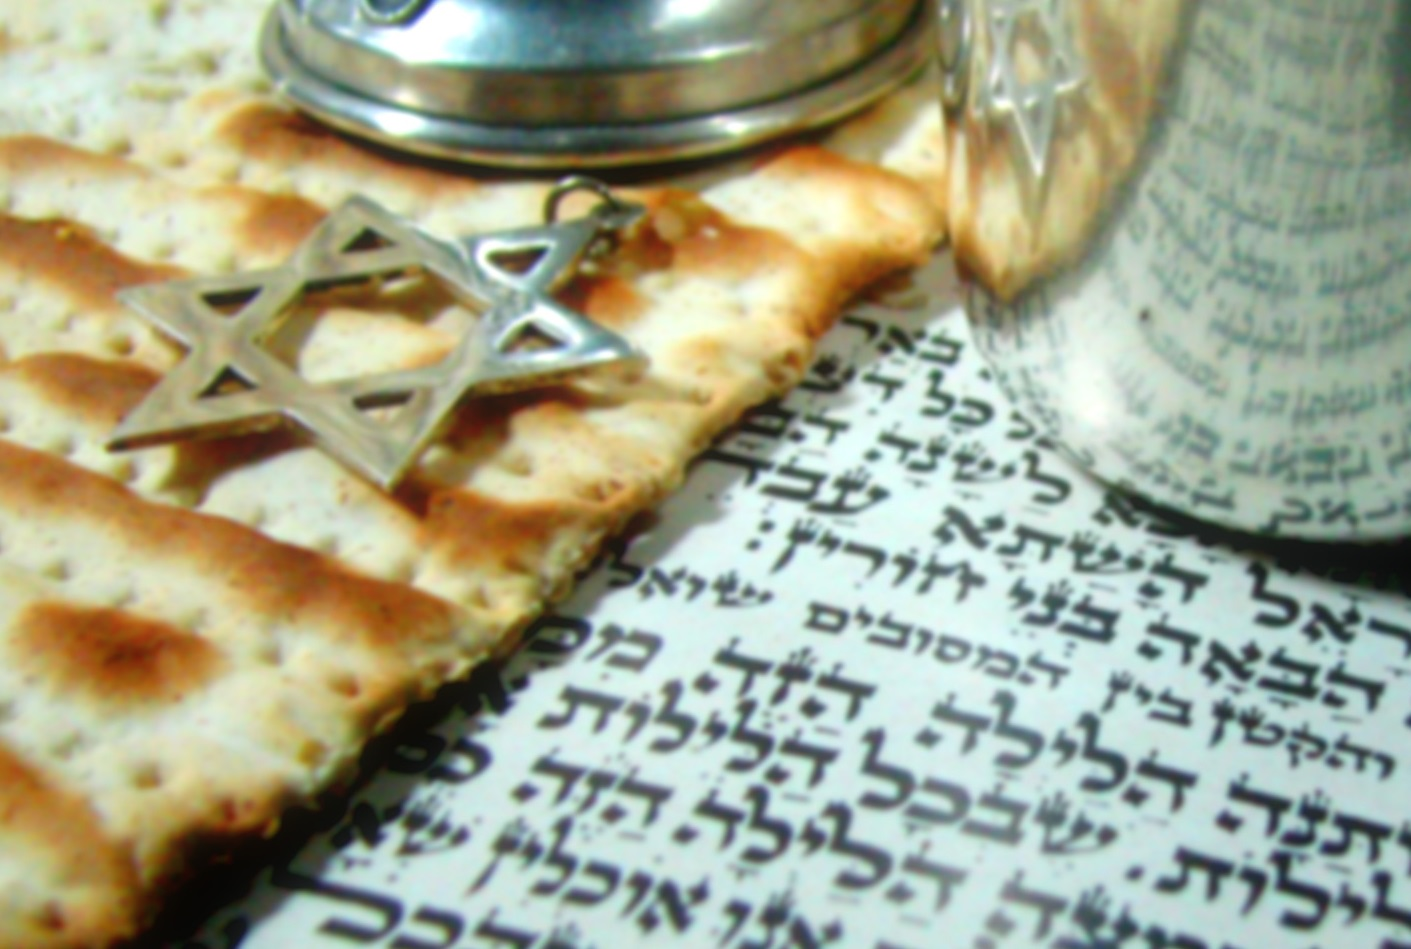 Matzah and silver